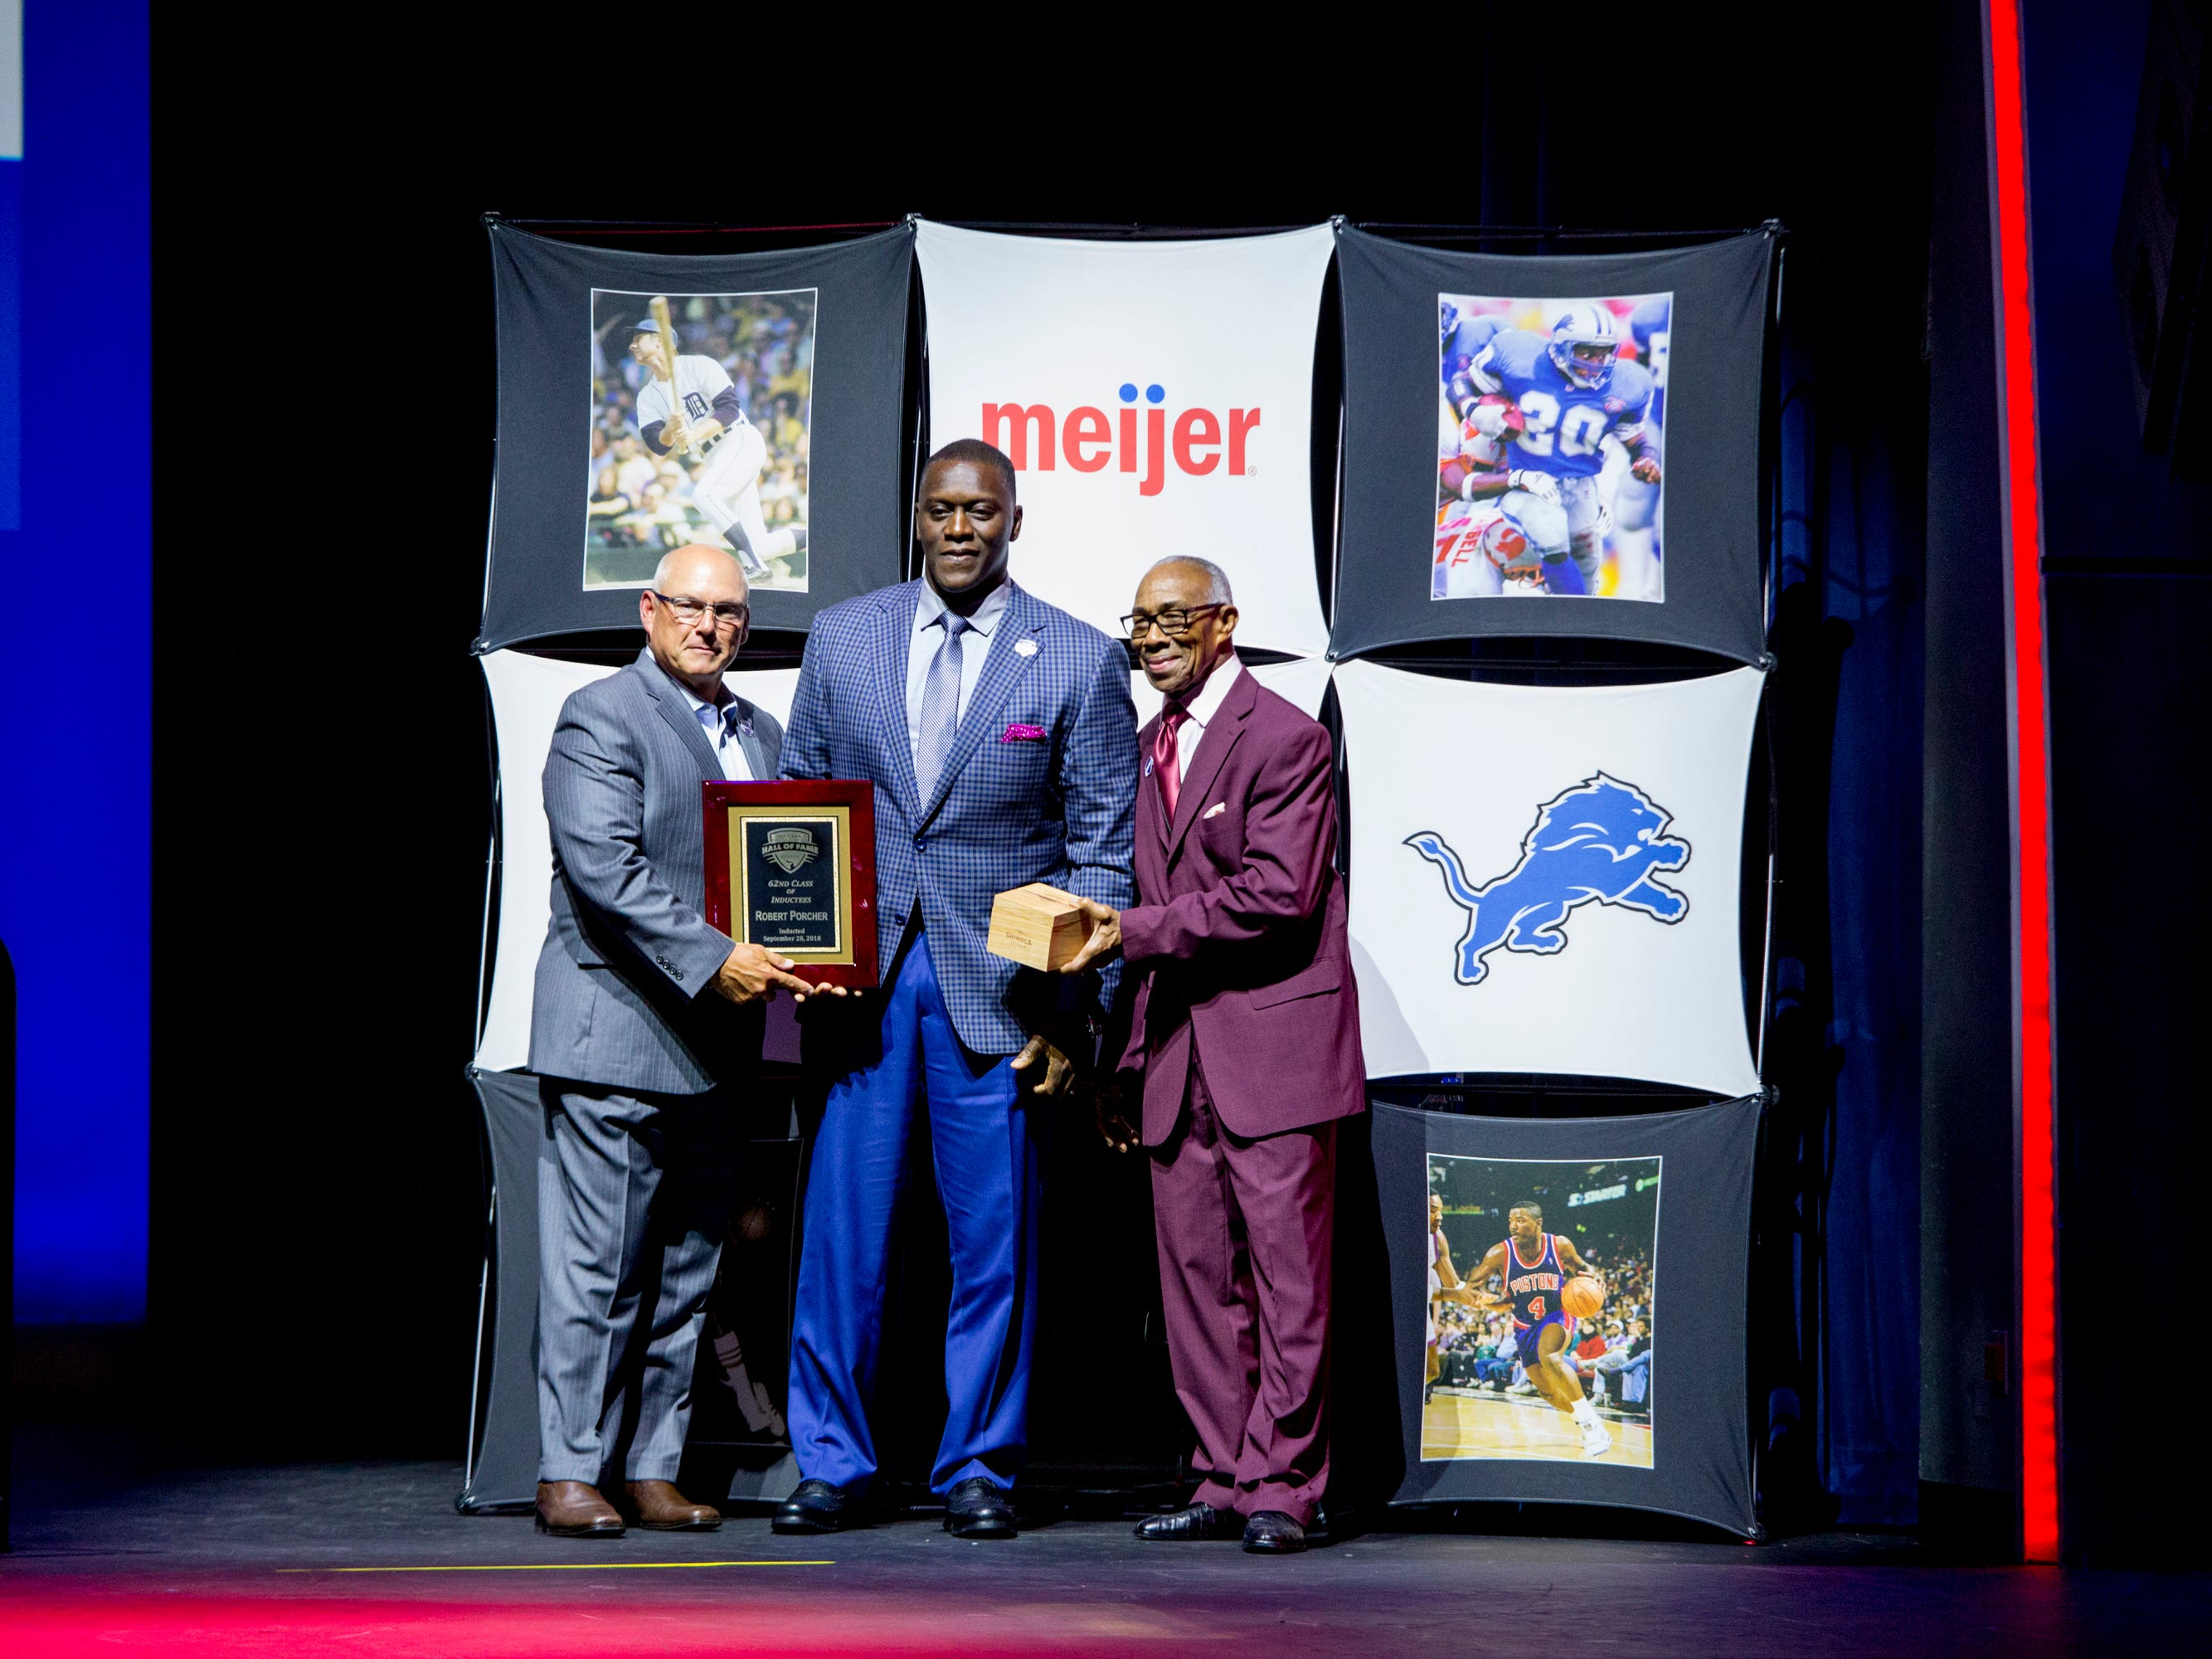 Former Detroit Lions defensive end Robert Porcher receives his award. With him is fellow Lions great Lem Barney (right).